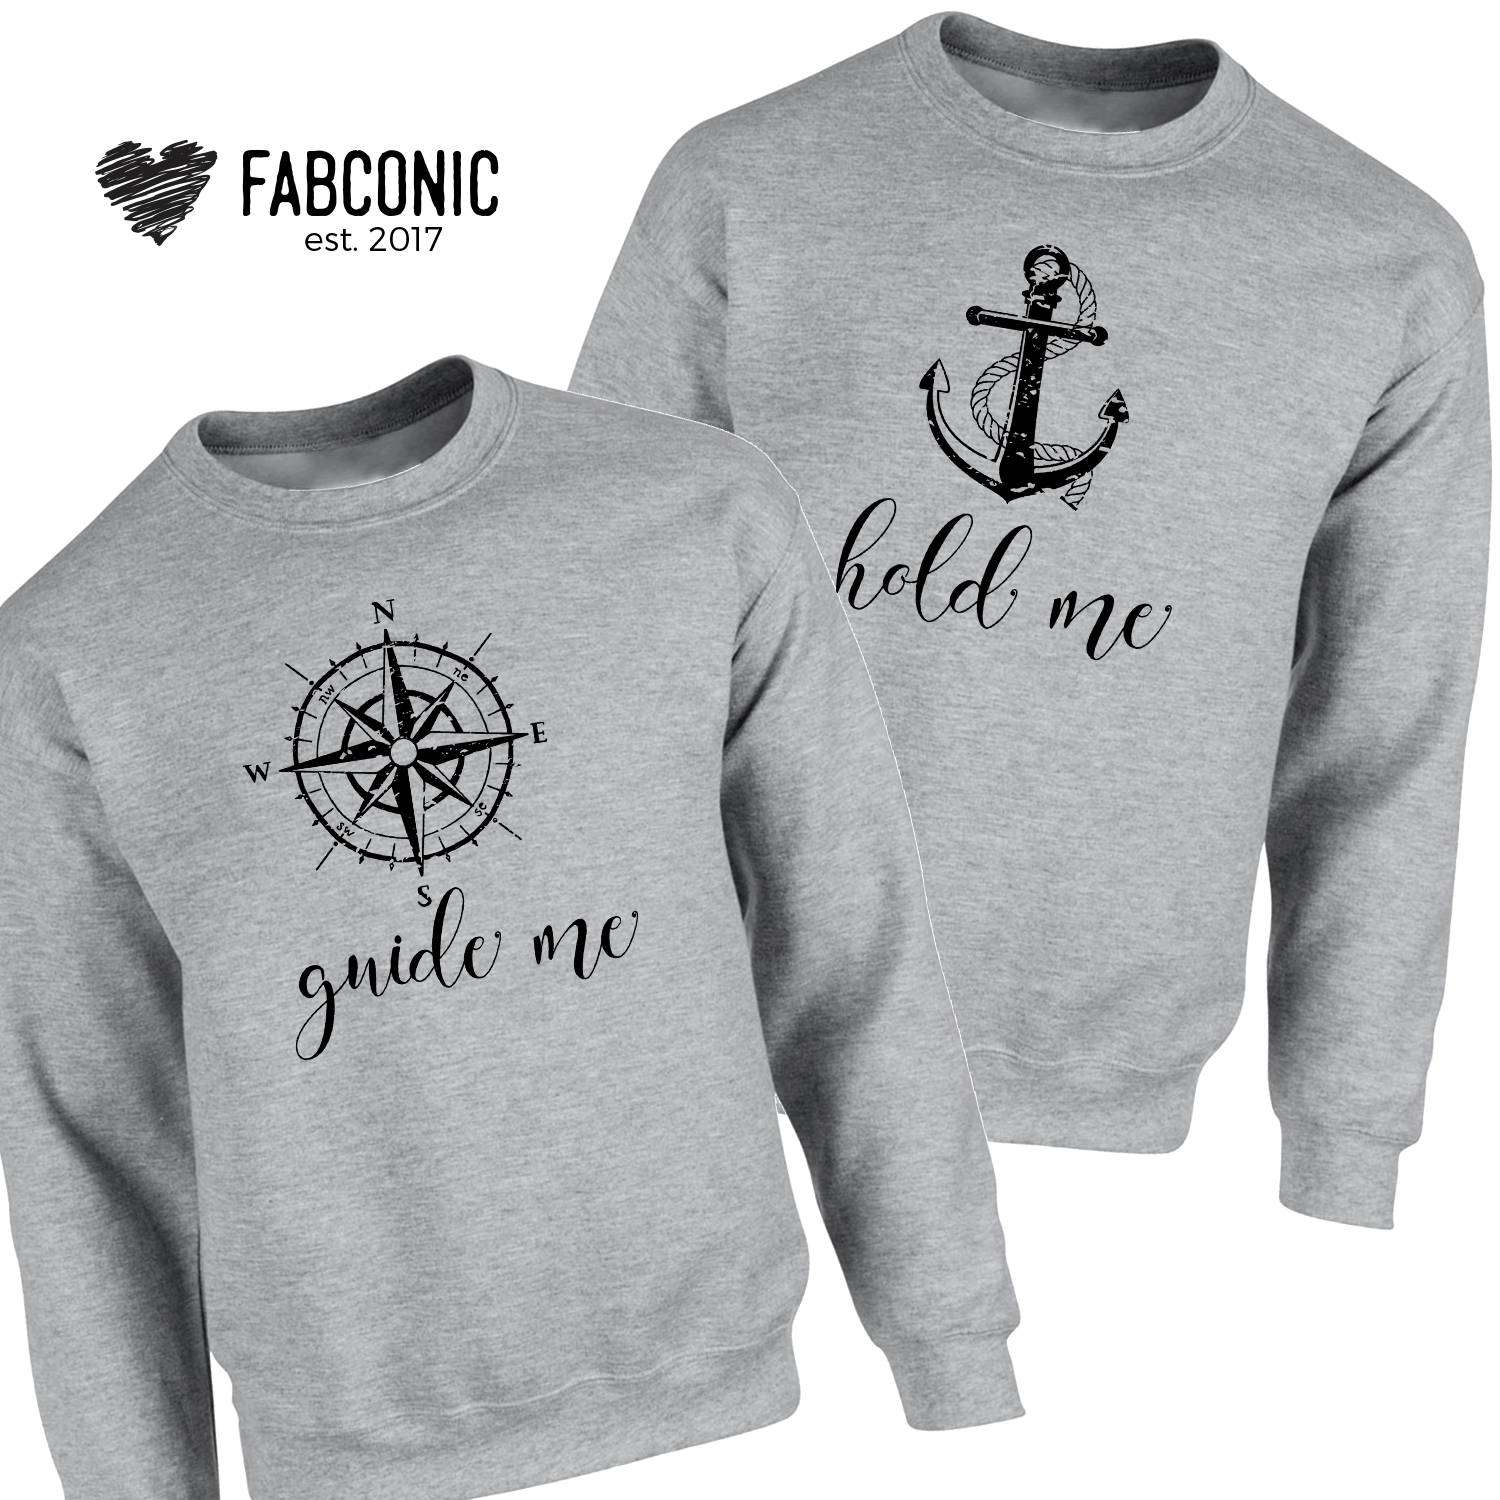 reputable site a30b7 b5c70 Couple Sweatshirts, Guide Me Hold Me Sweatshirts, His and Hers Sweaters